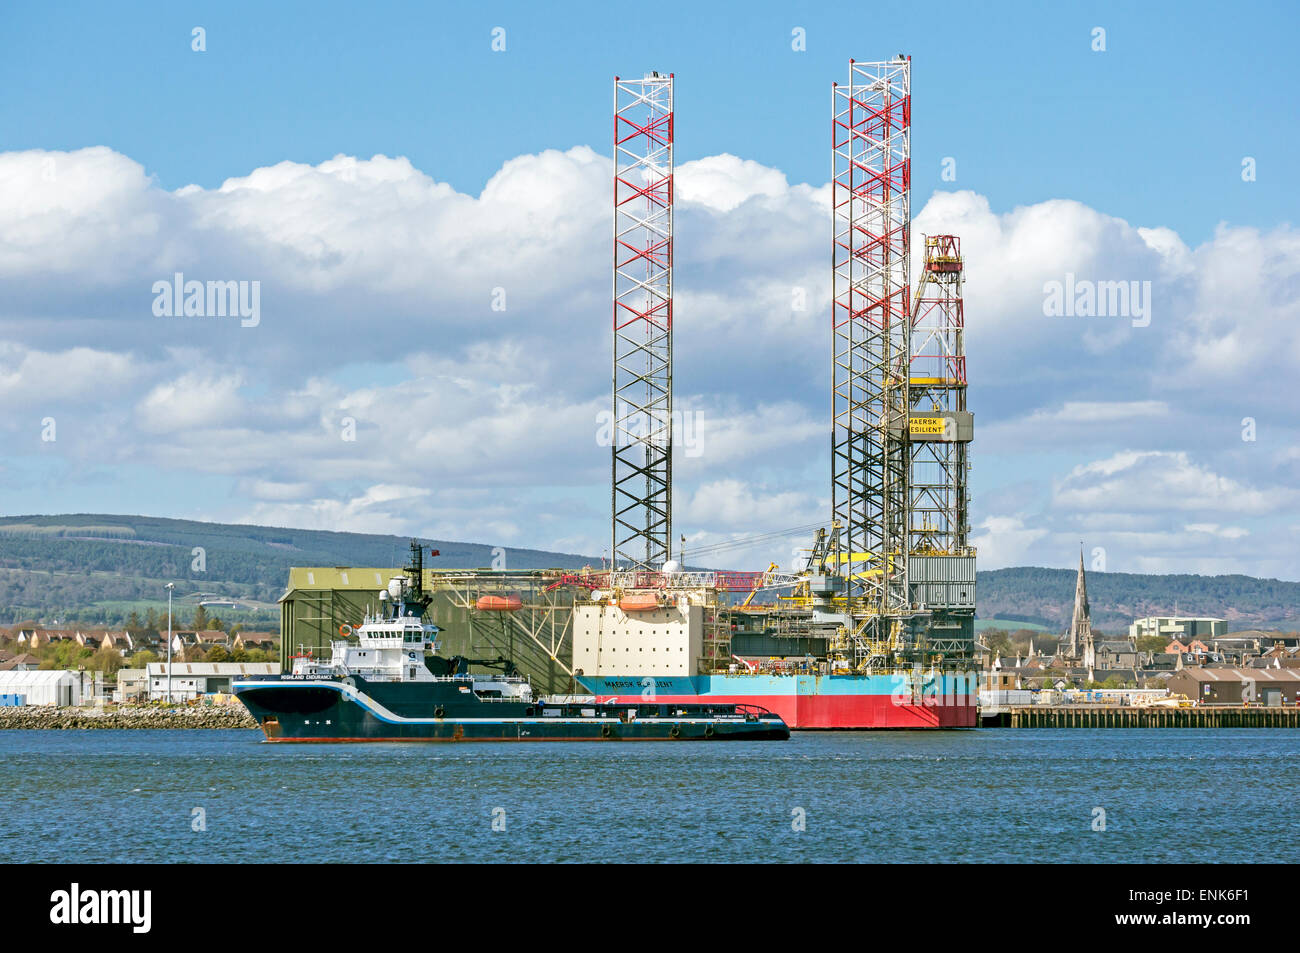 Highland Endurance & Maersk Resilient anchored at Invergordon in the Cromarty Firth Highland Scotland - Stock Image